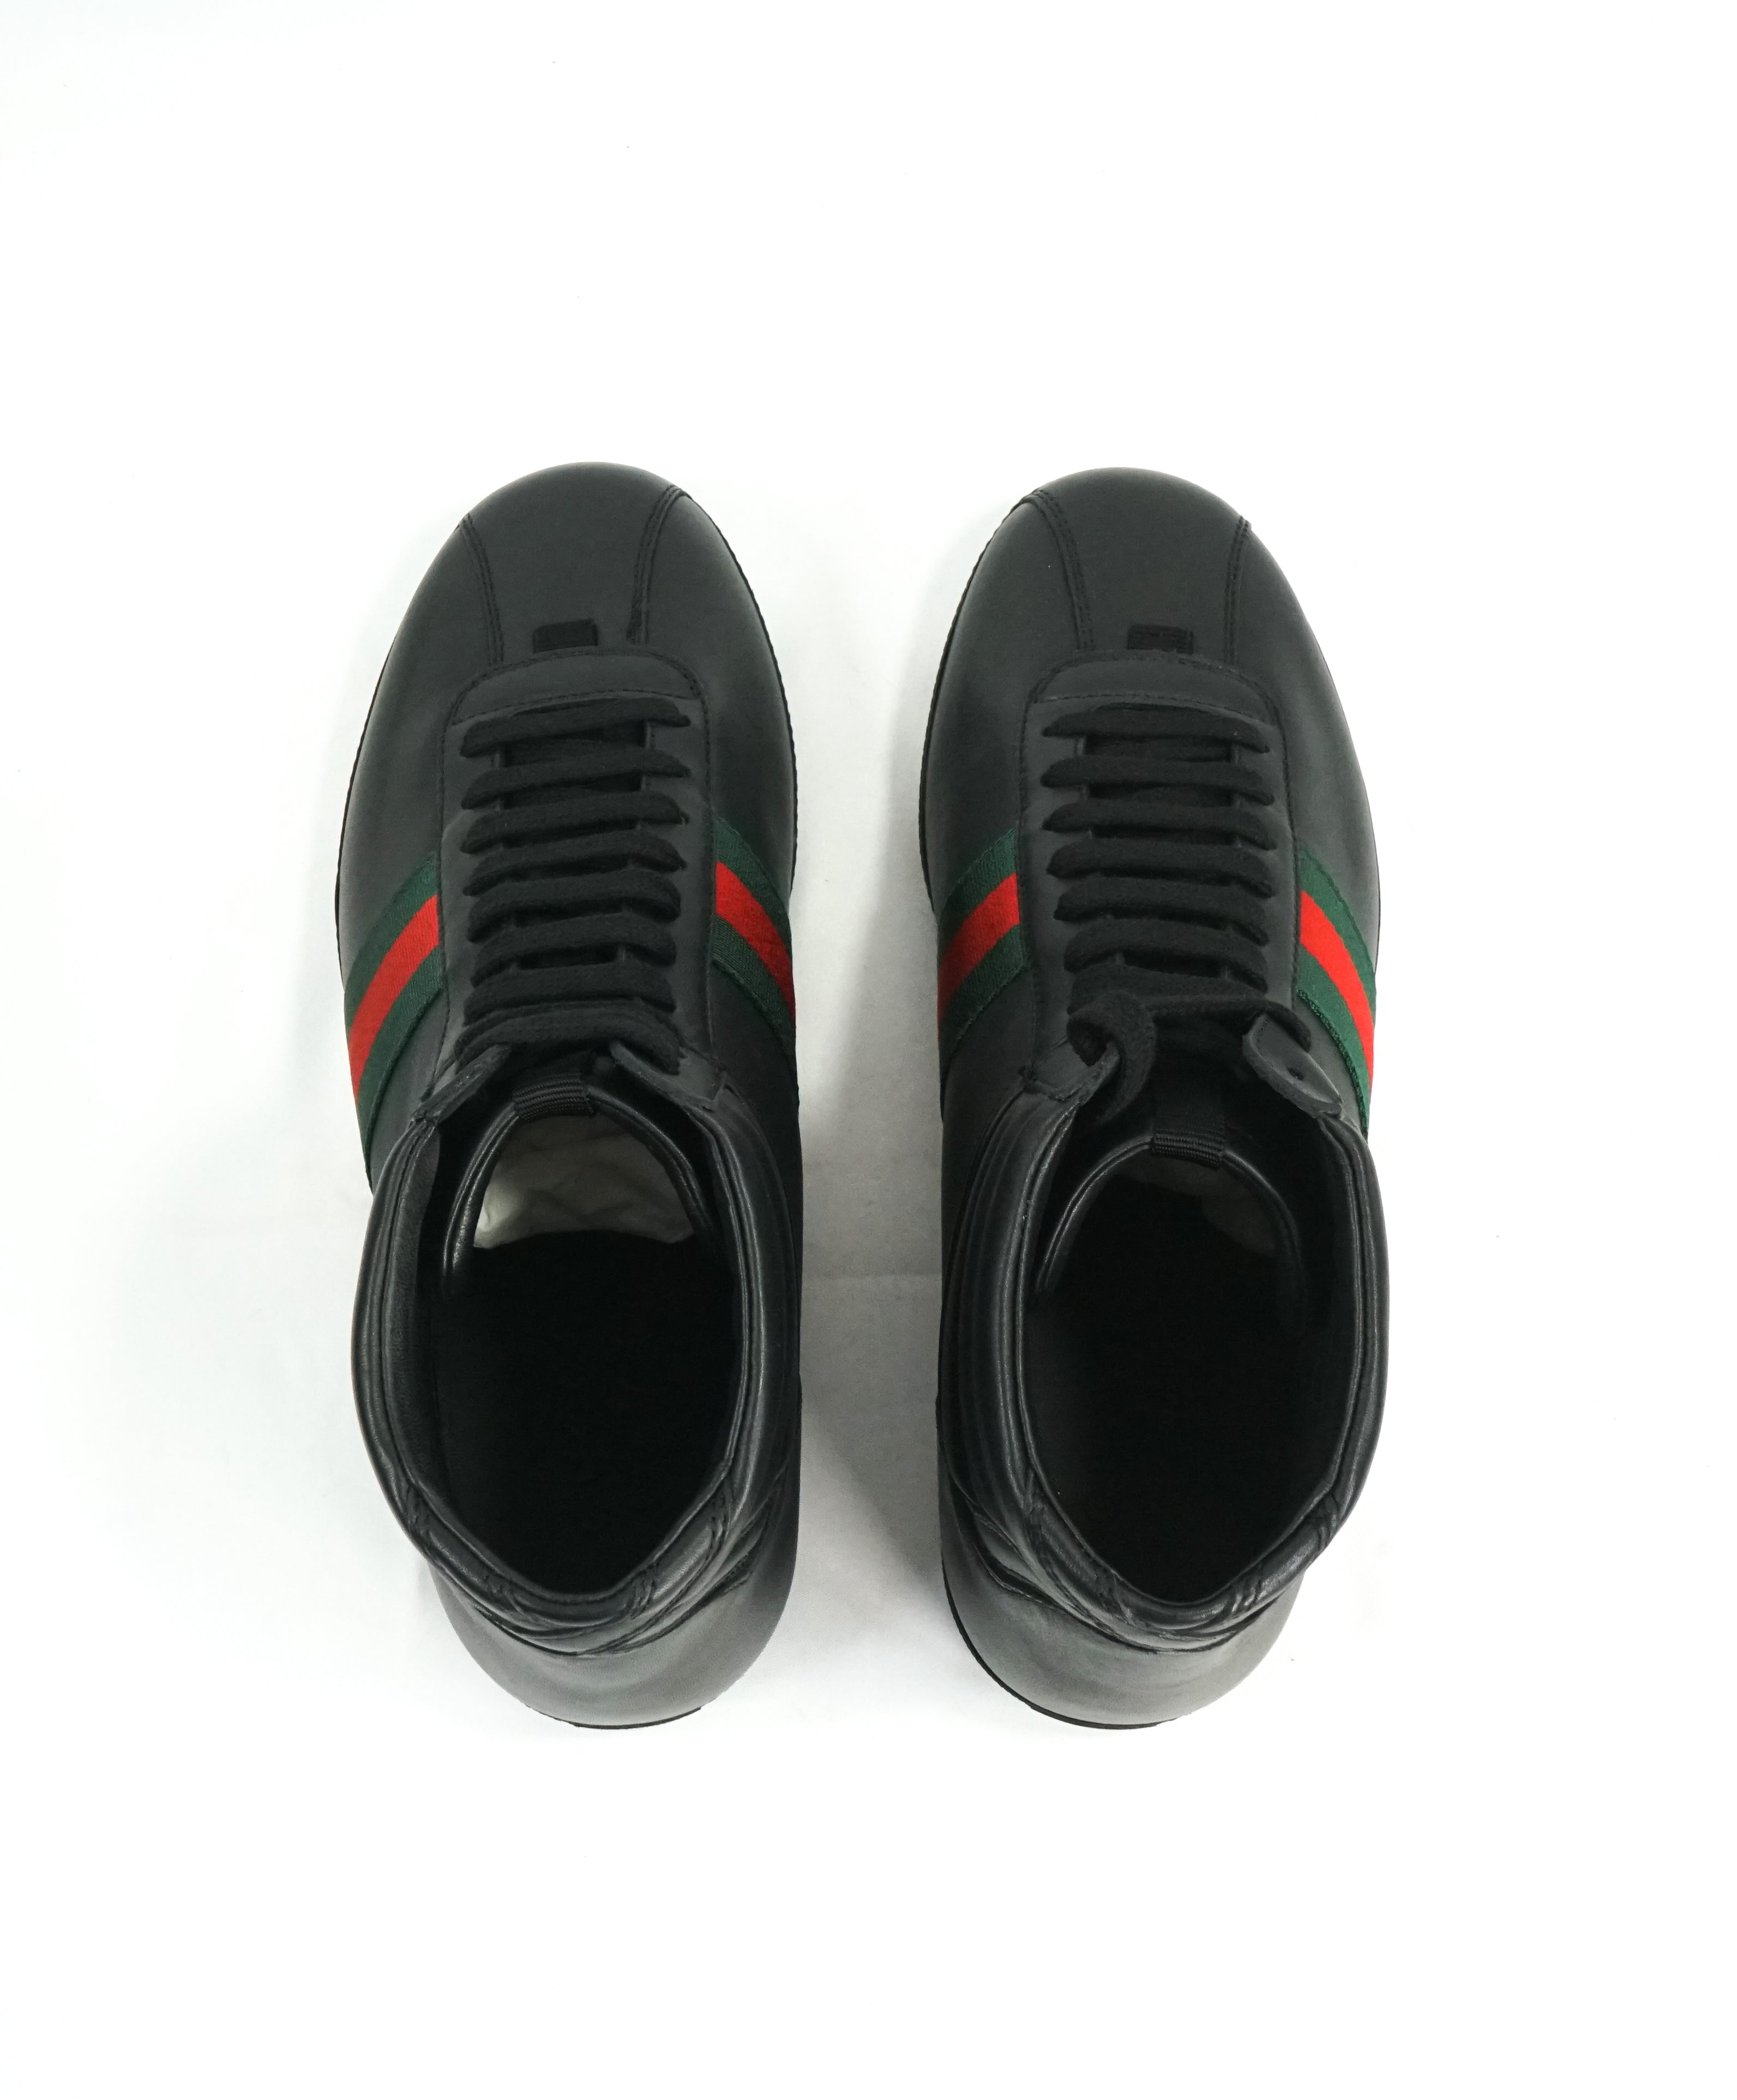 GUCCI -Red & Green Logo Stripe GG High-Top Black Sneakers - 6G / 6.5 US